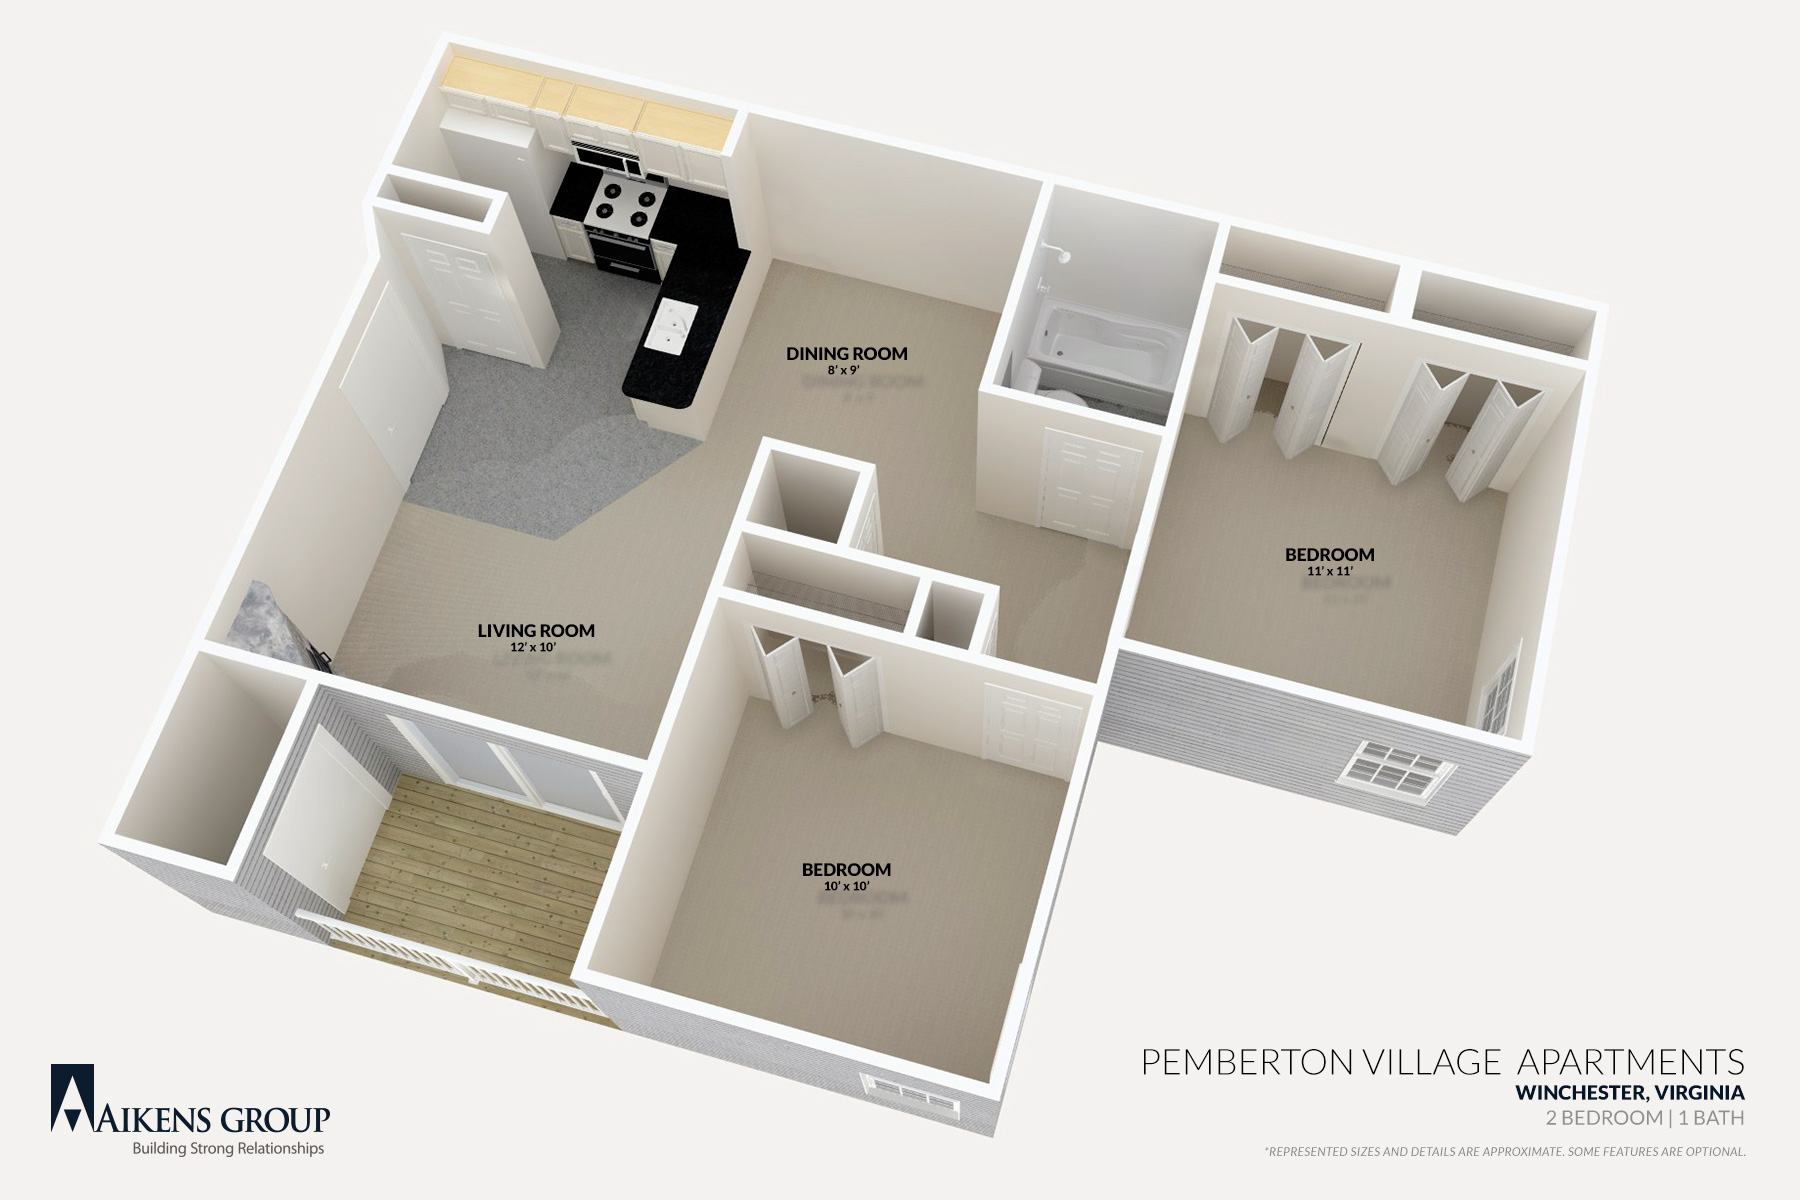 Pemberton Village Apartments   Winchester  VA   2BR 1BA Floorplan. Pemberton Village Apartments   Aikens Group